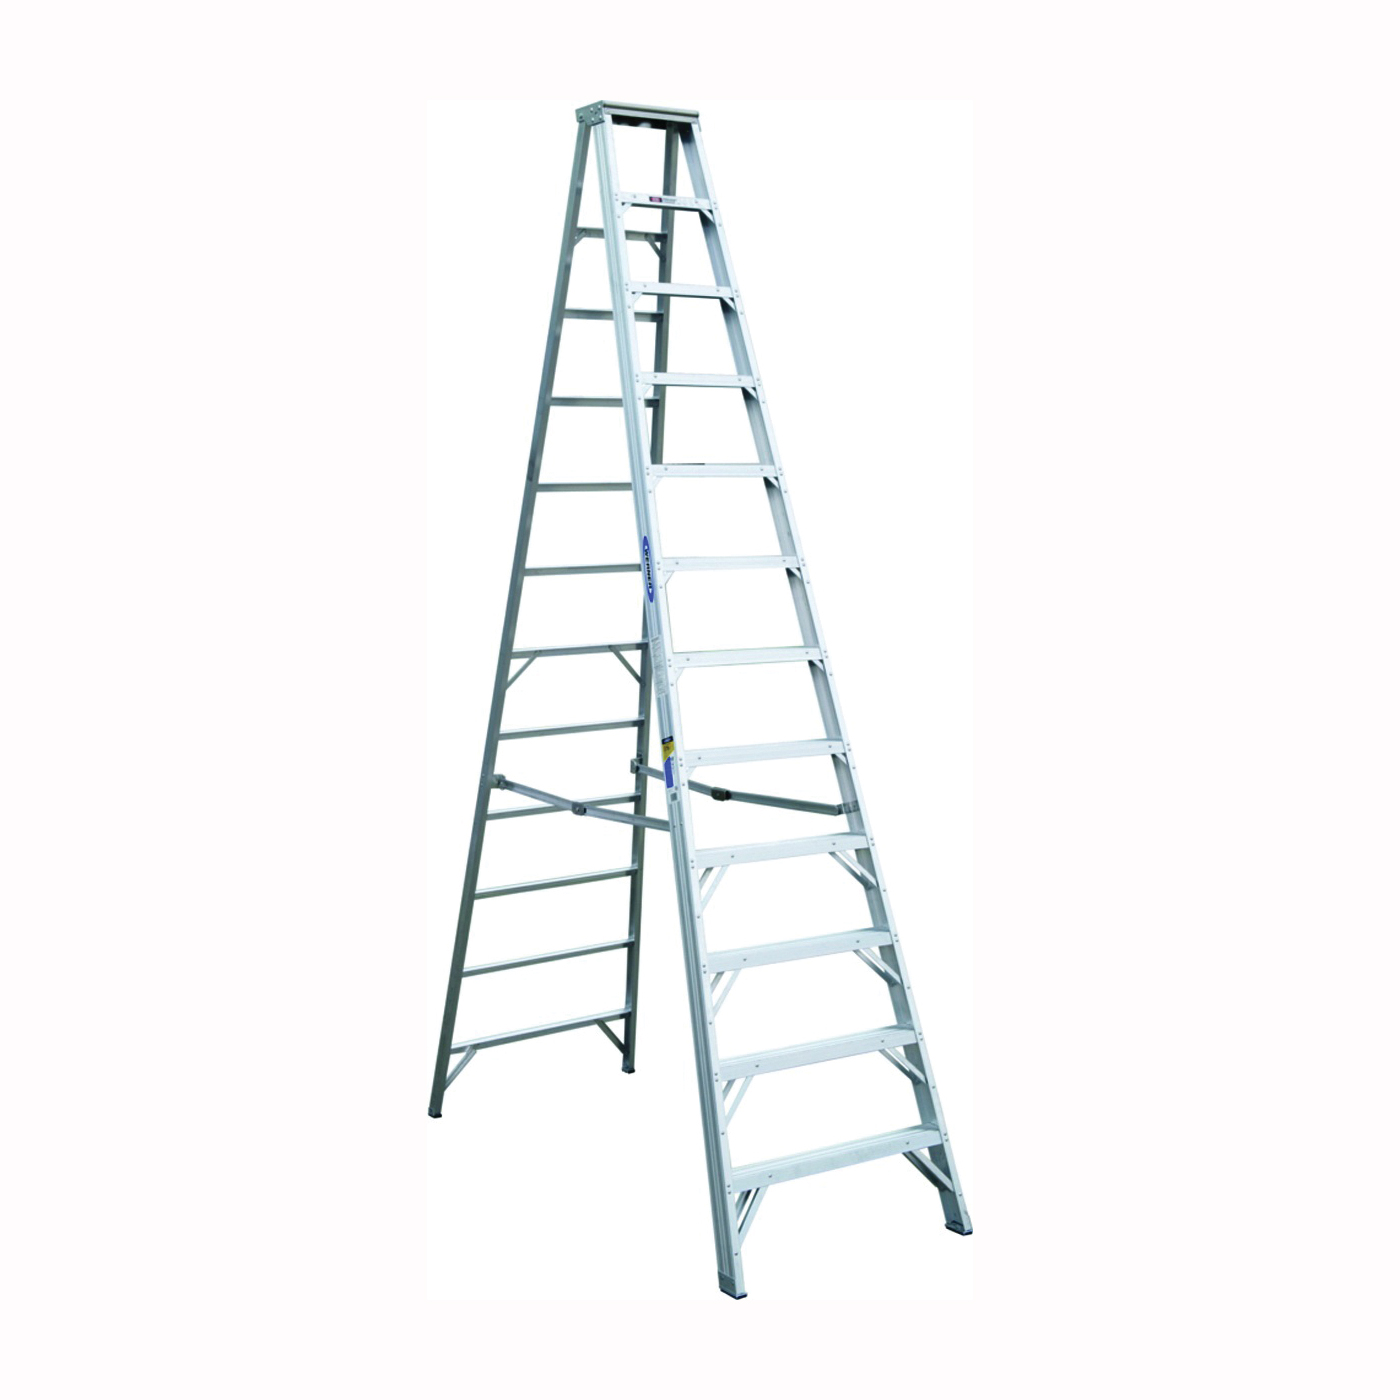 Picture of WERNER 412 Step Ladder, 16 ft Max Reach H, 11-Step, 375 lb, Type IAA Duty Rating, 3 in D Step, Aluminum